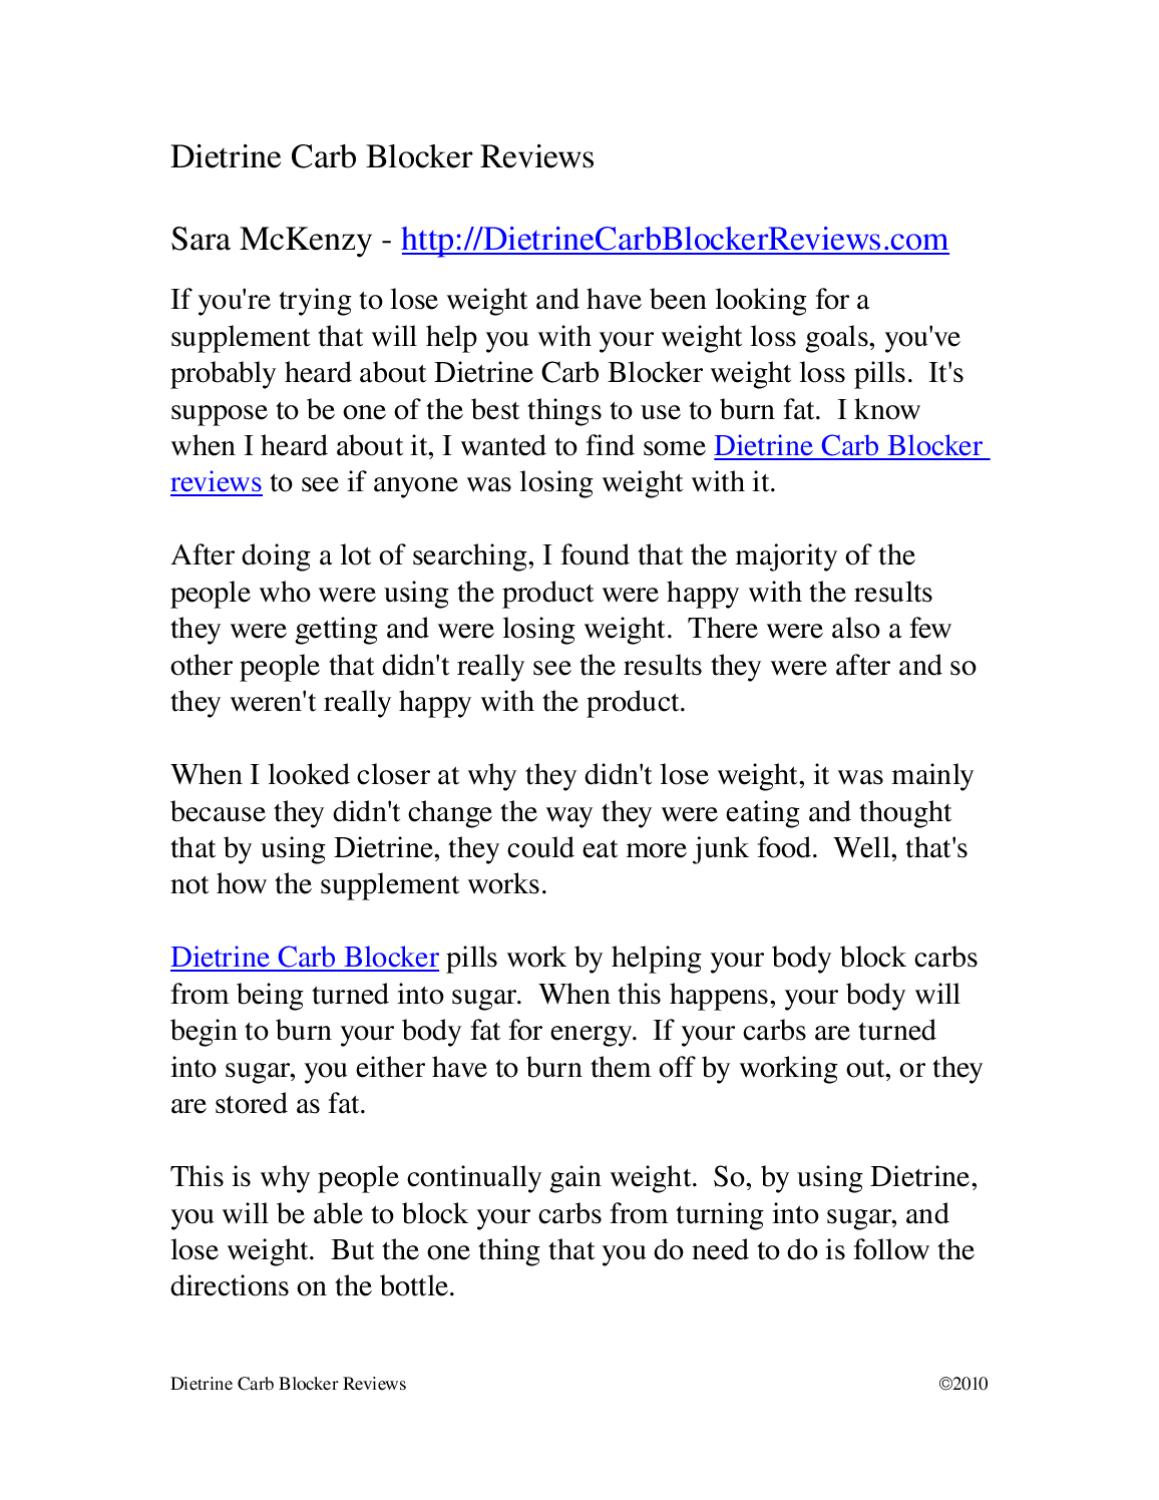 Dietrine Carb Blocker Reviews By Sara Mckenzy Issuu